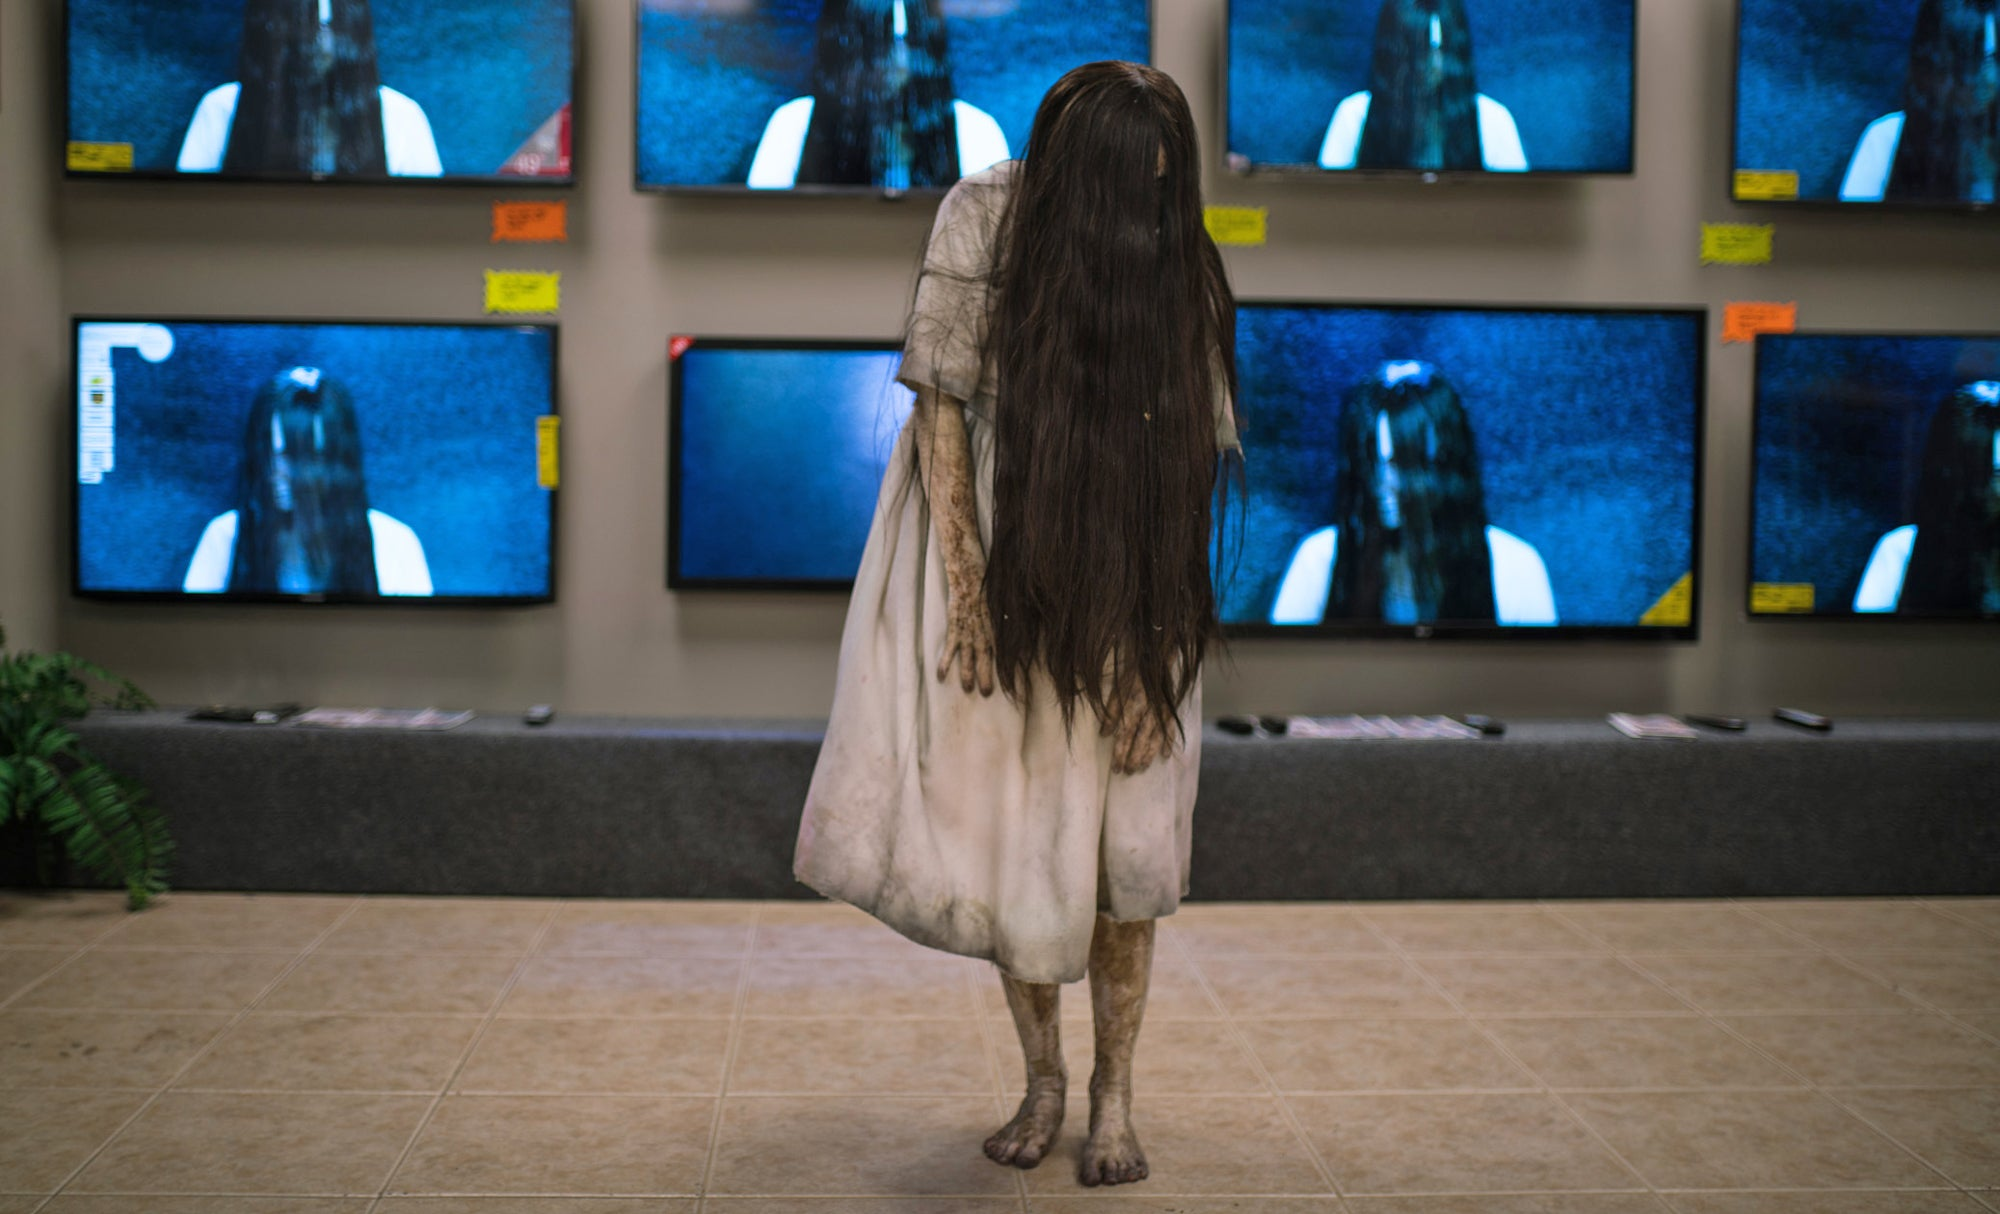 New 'Rings' horror movie PR stunt scares unsuspecting shoppers